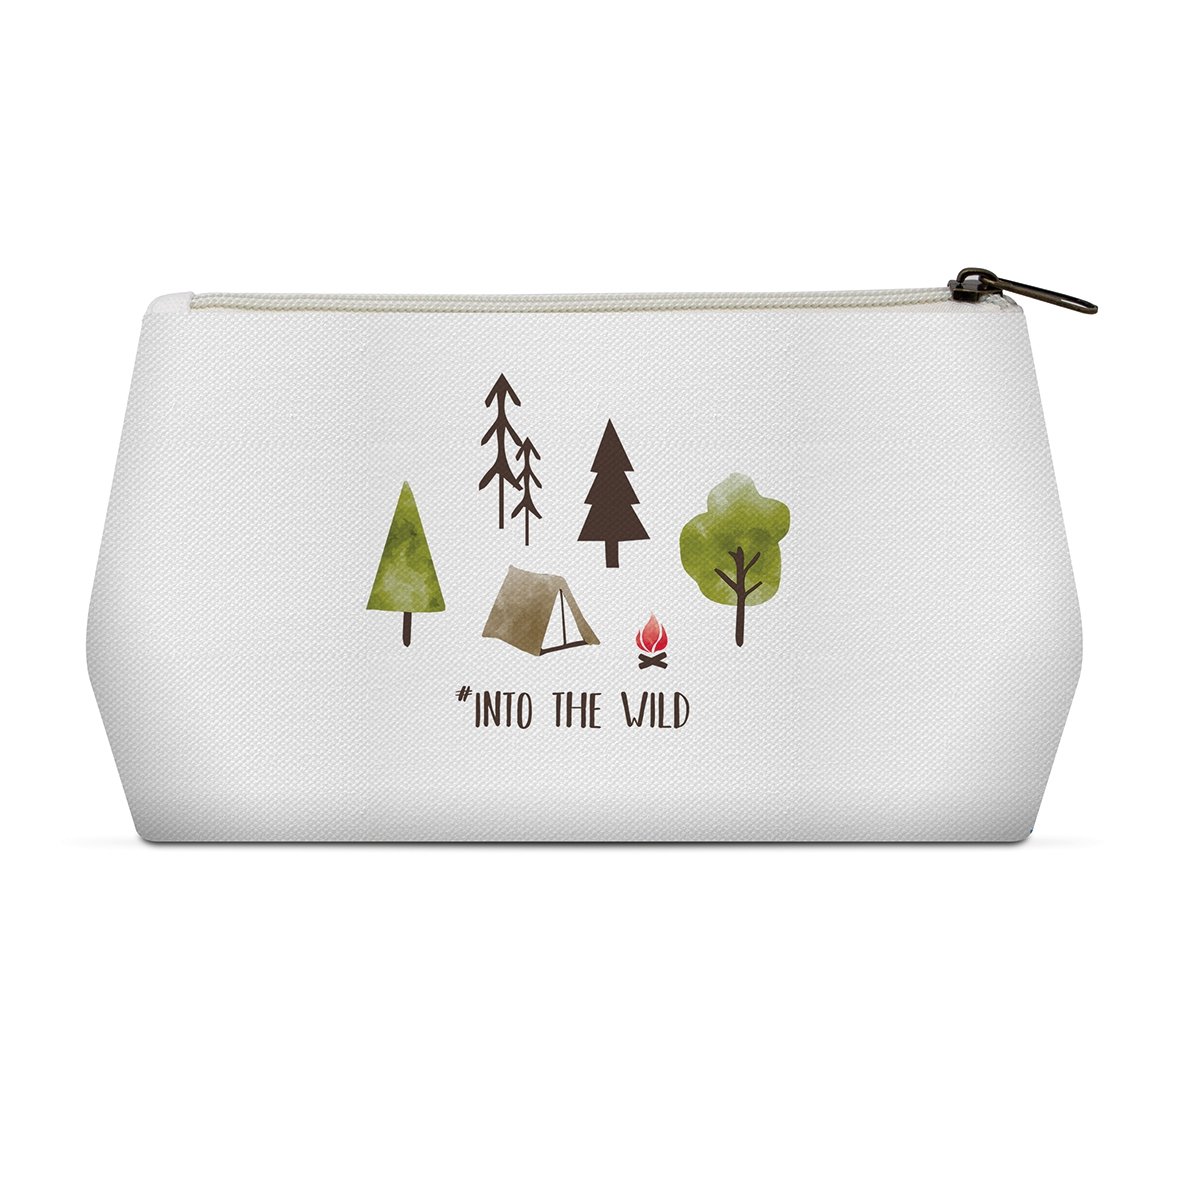 Cosmetic Bag - Into the wild